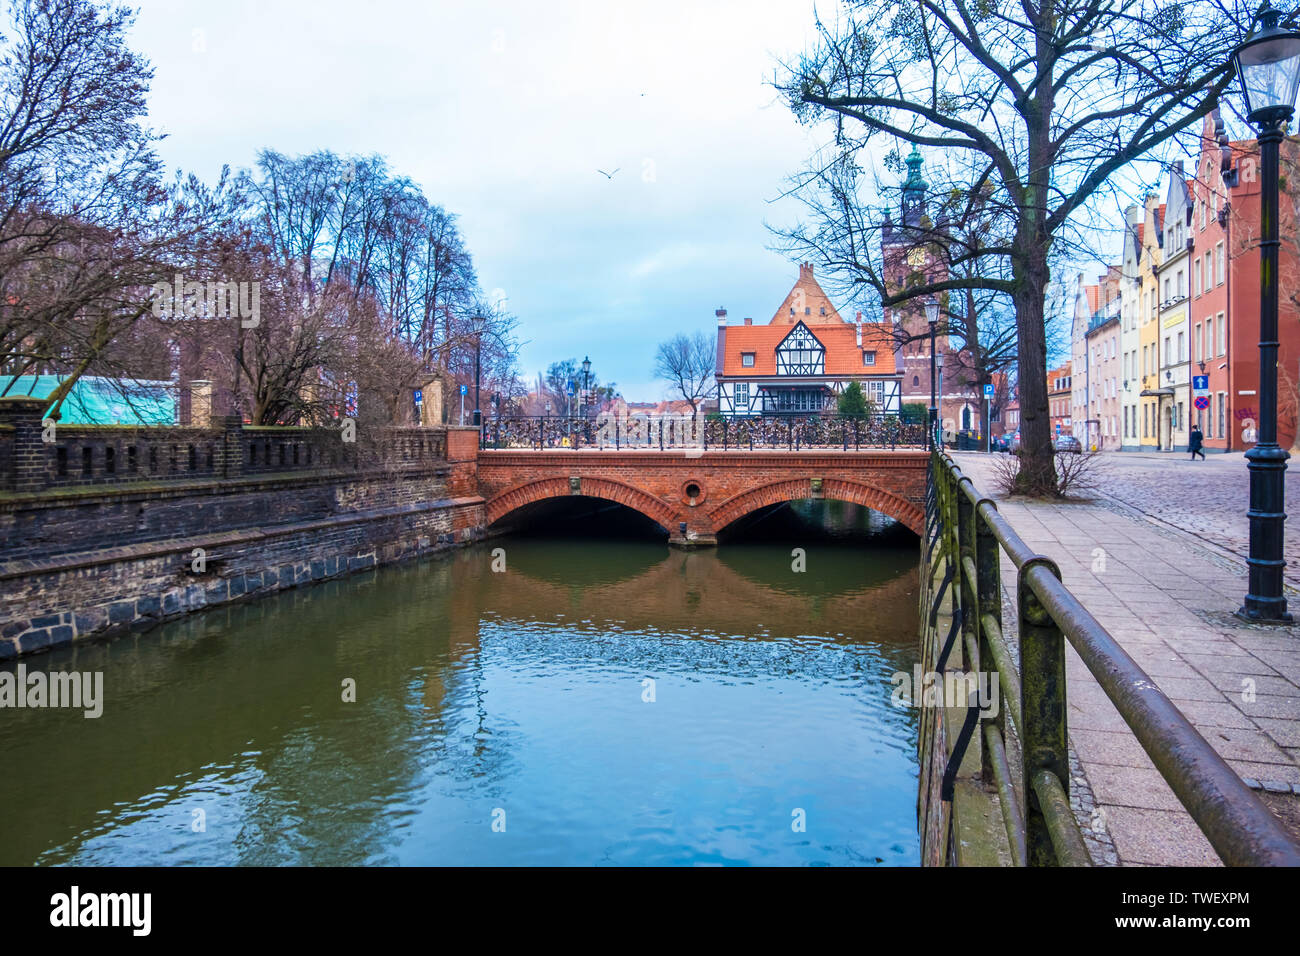 Gdansk, Poland - February 05, 2019: Miller's Guild House and Love Bridge on the canal in Gdansk old town, Poland - Stock Image